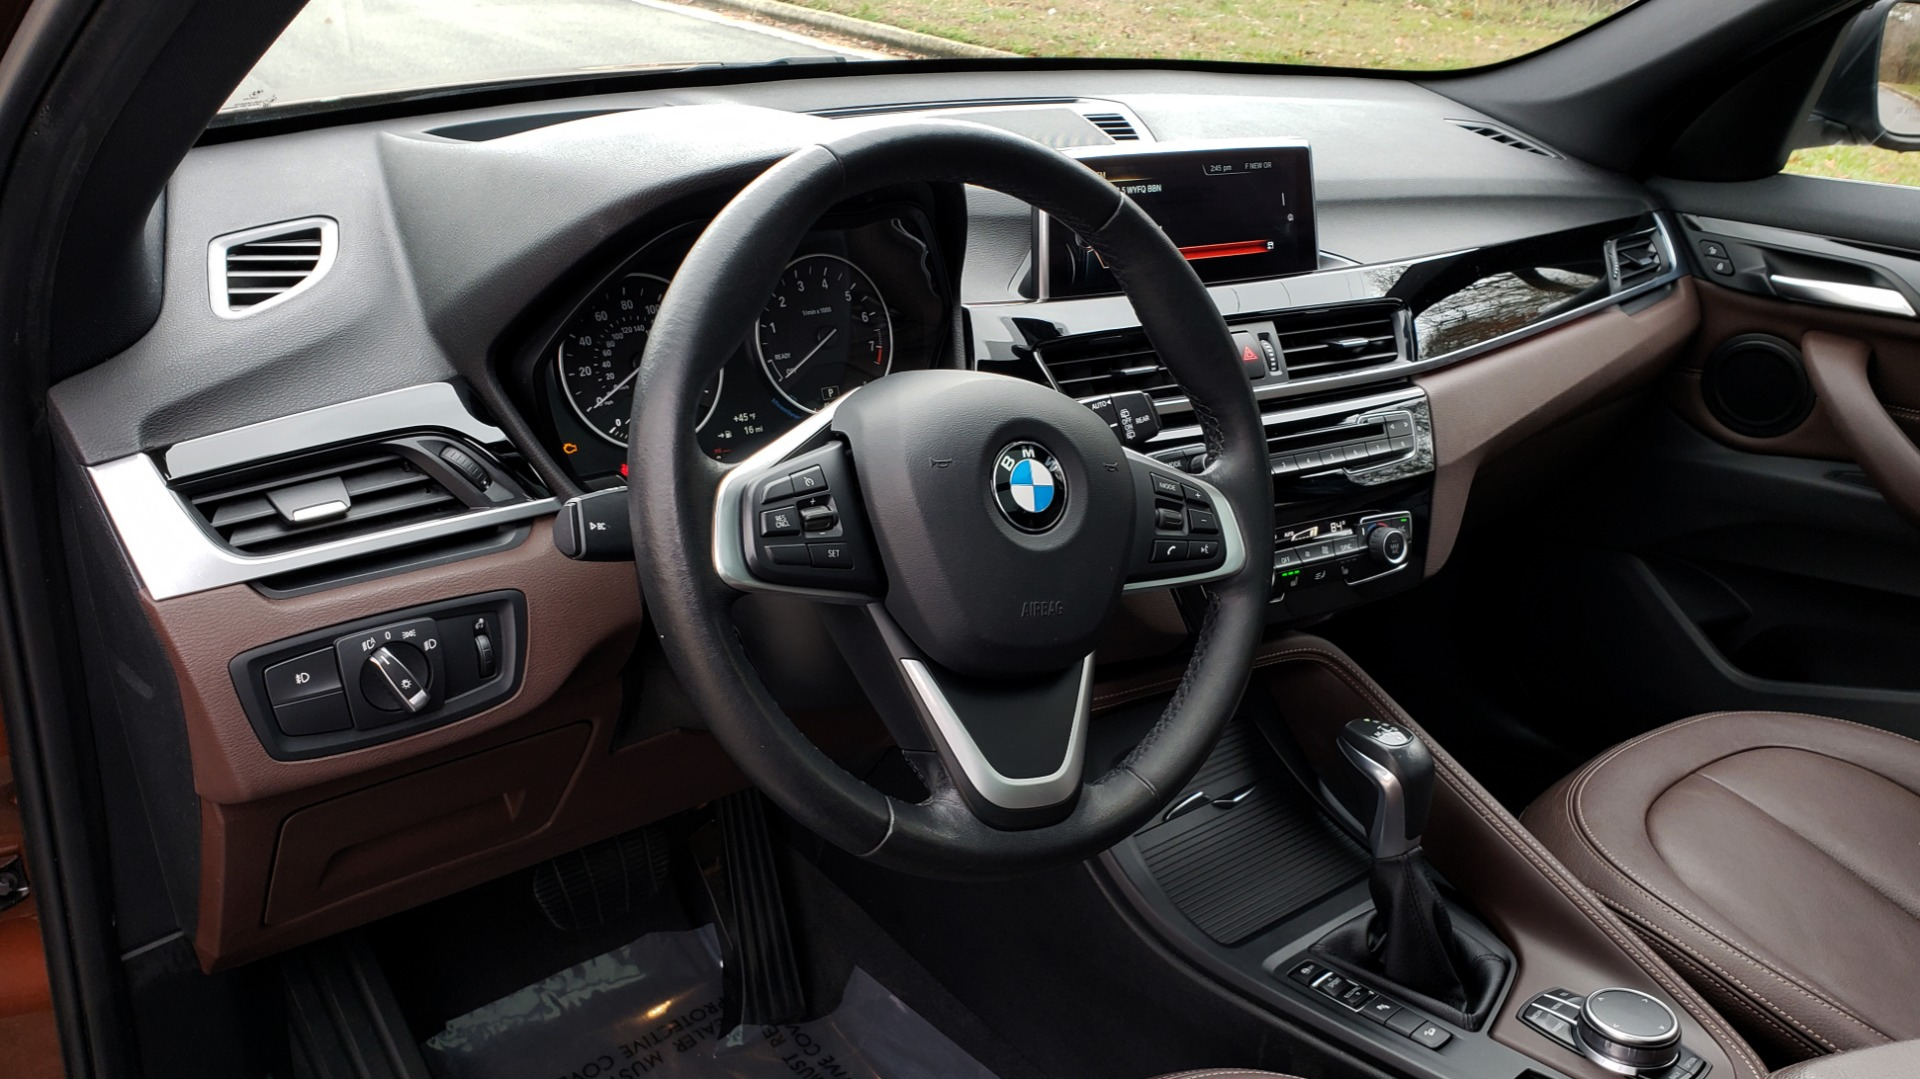 Used 2017 BMW X1 XDRIVE28I / PREM / TECH / DRVR ASST / COLD WTHR / REARVIEW for sale Sold at Formula Imports in Charlotte NC 28227 36